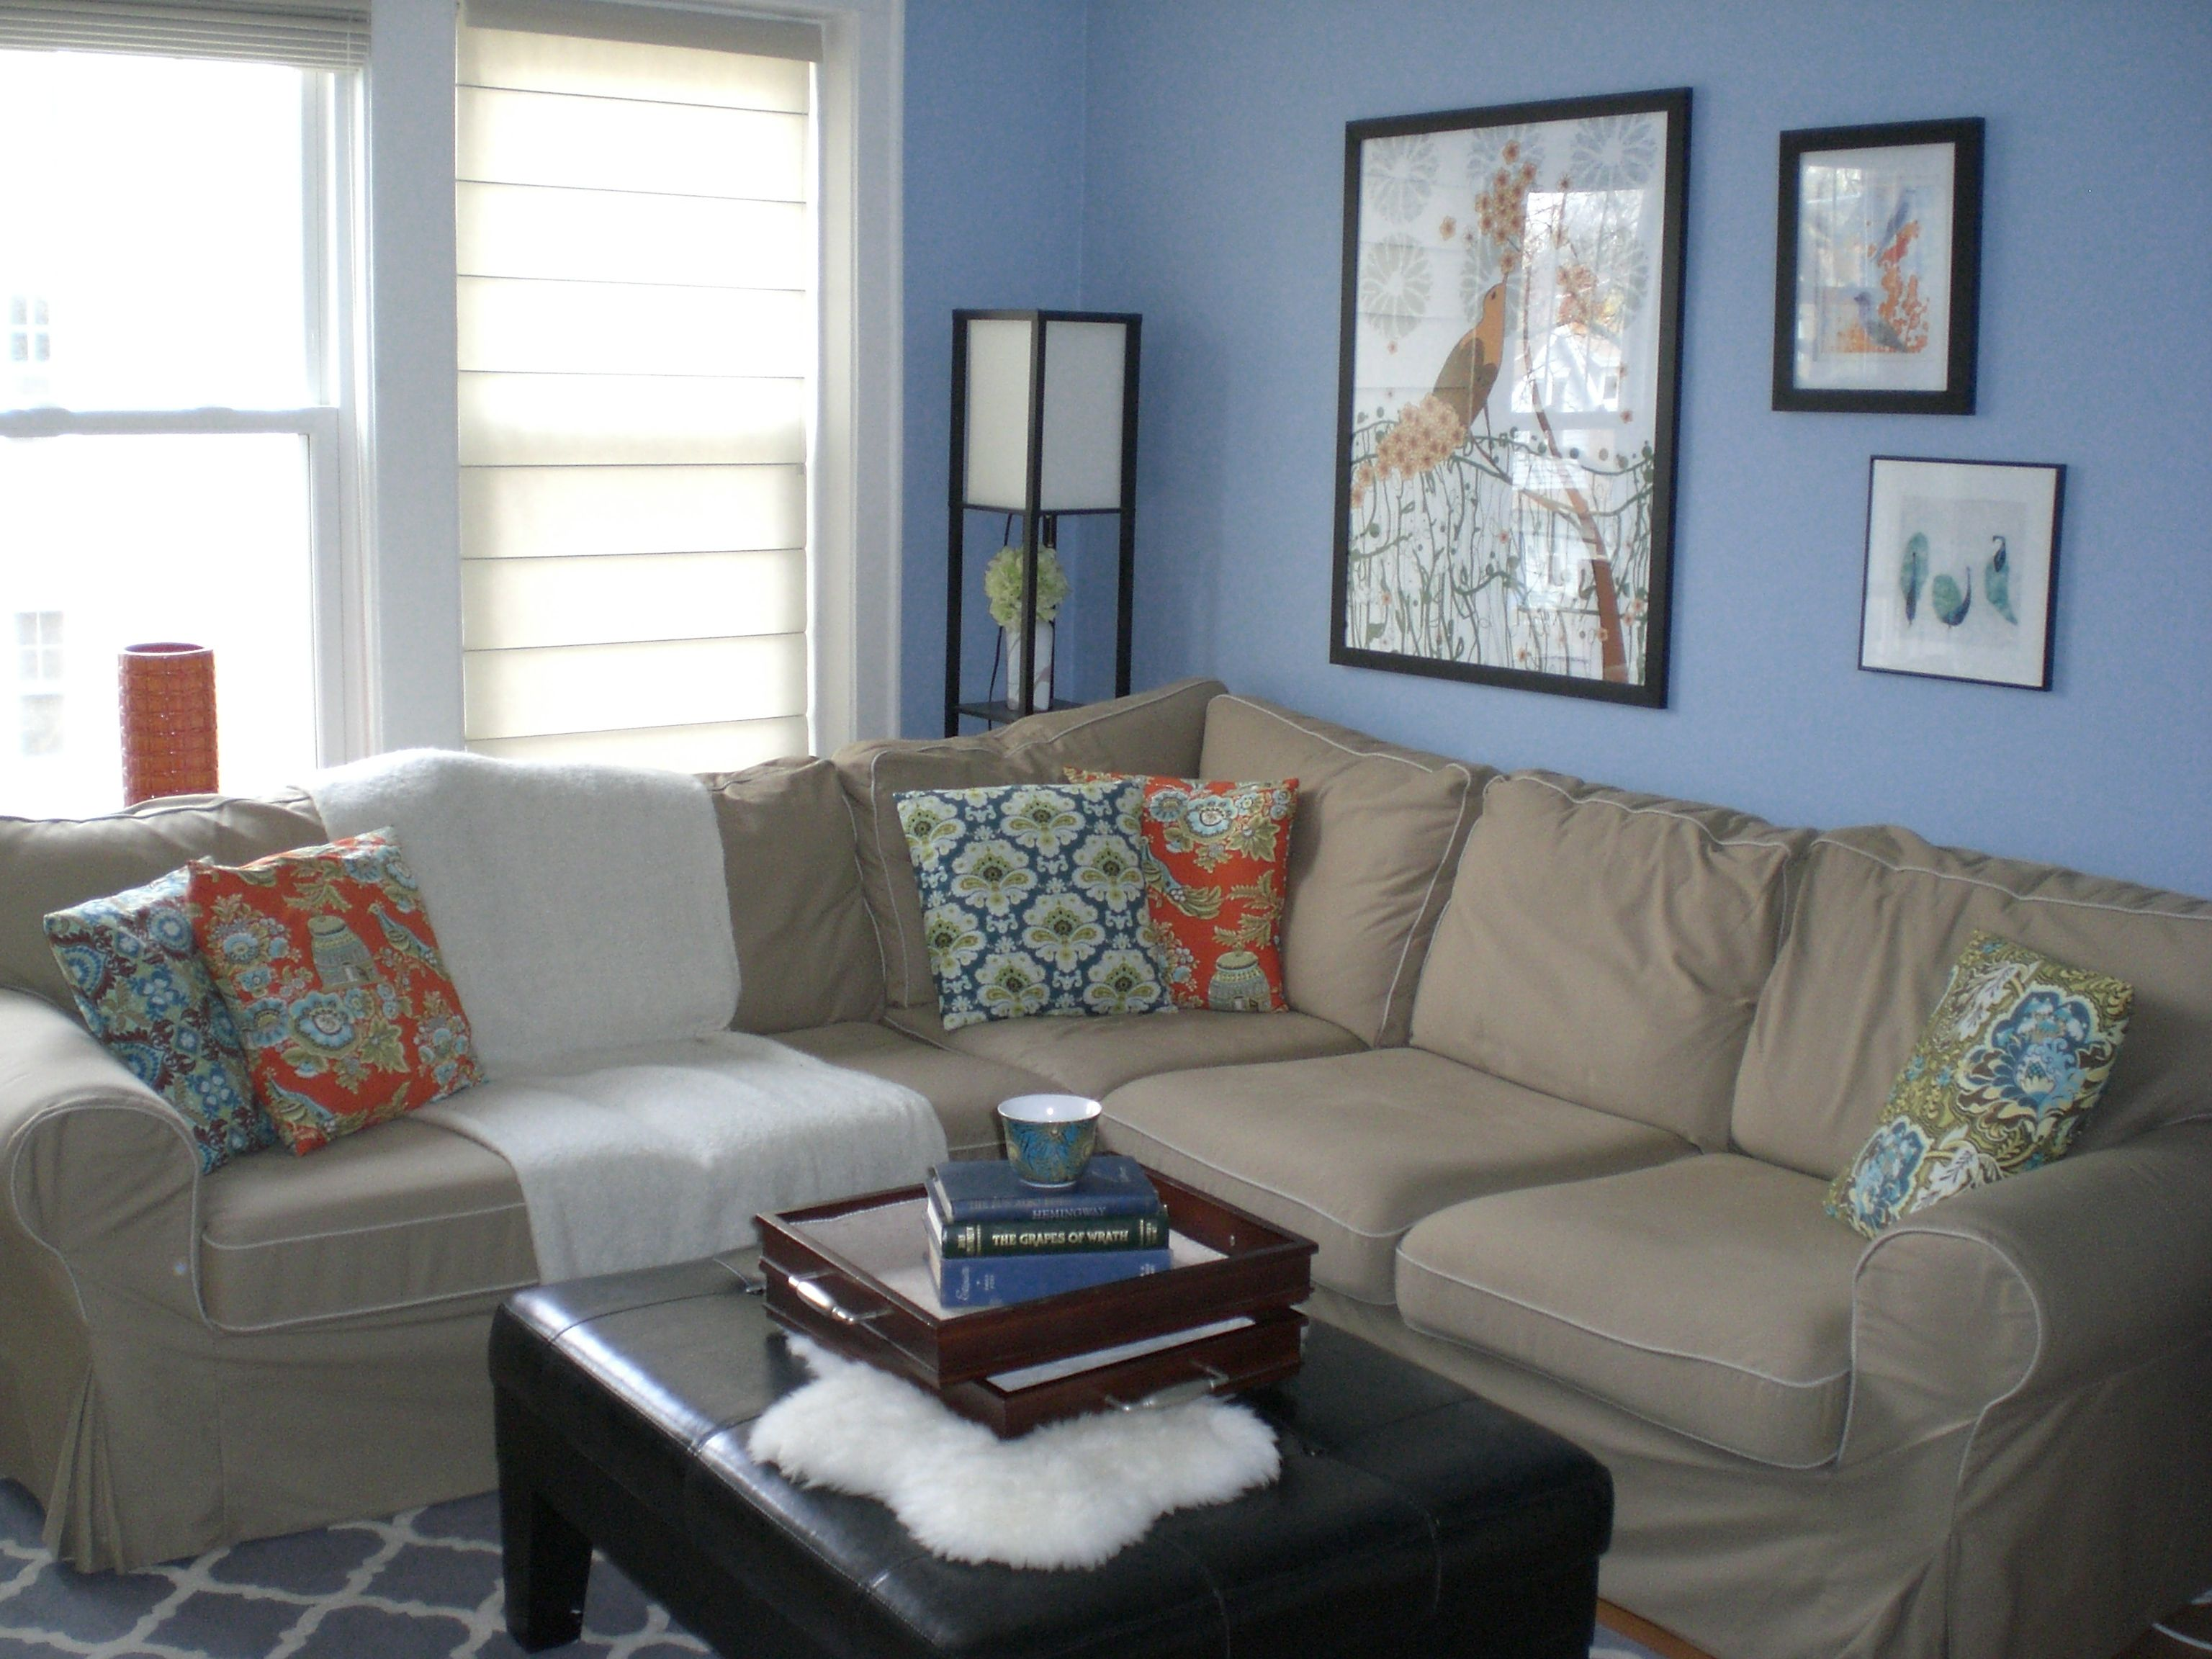 Light blue bedroom paint colors - Light Blue Paint Colors For Living Room Xrkotdh